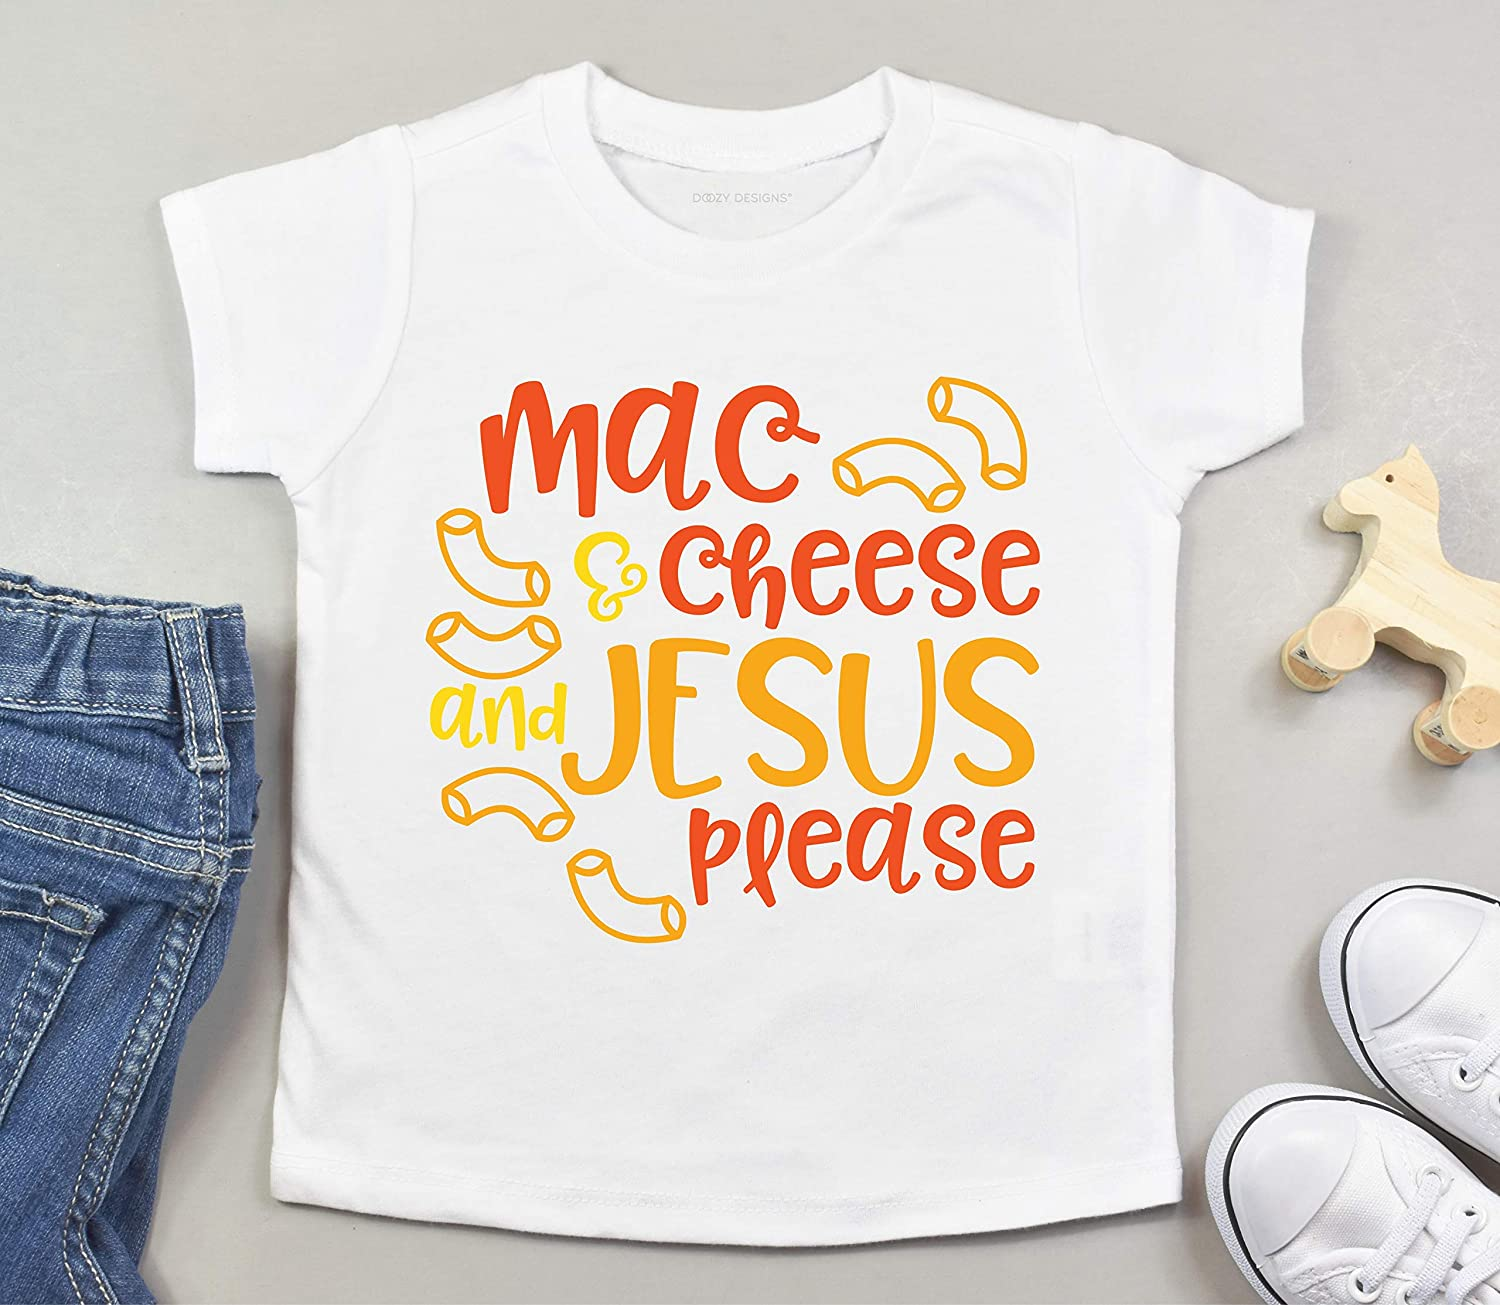 Baby Boy Baby Shower Gifts Jesus Baby Clothes Neutral Baby Clothes Mac and Cheese Shirt Funny Baby Gifts Baby Girl